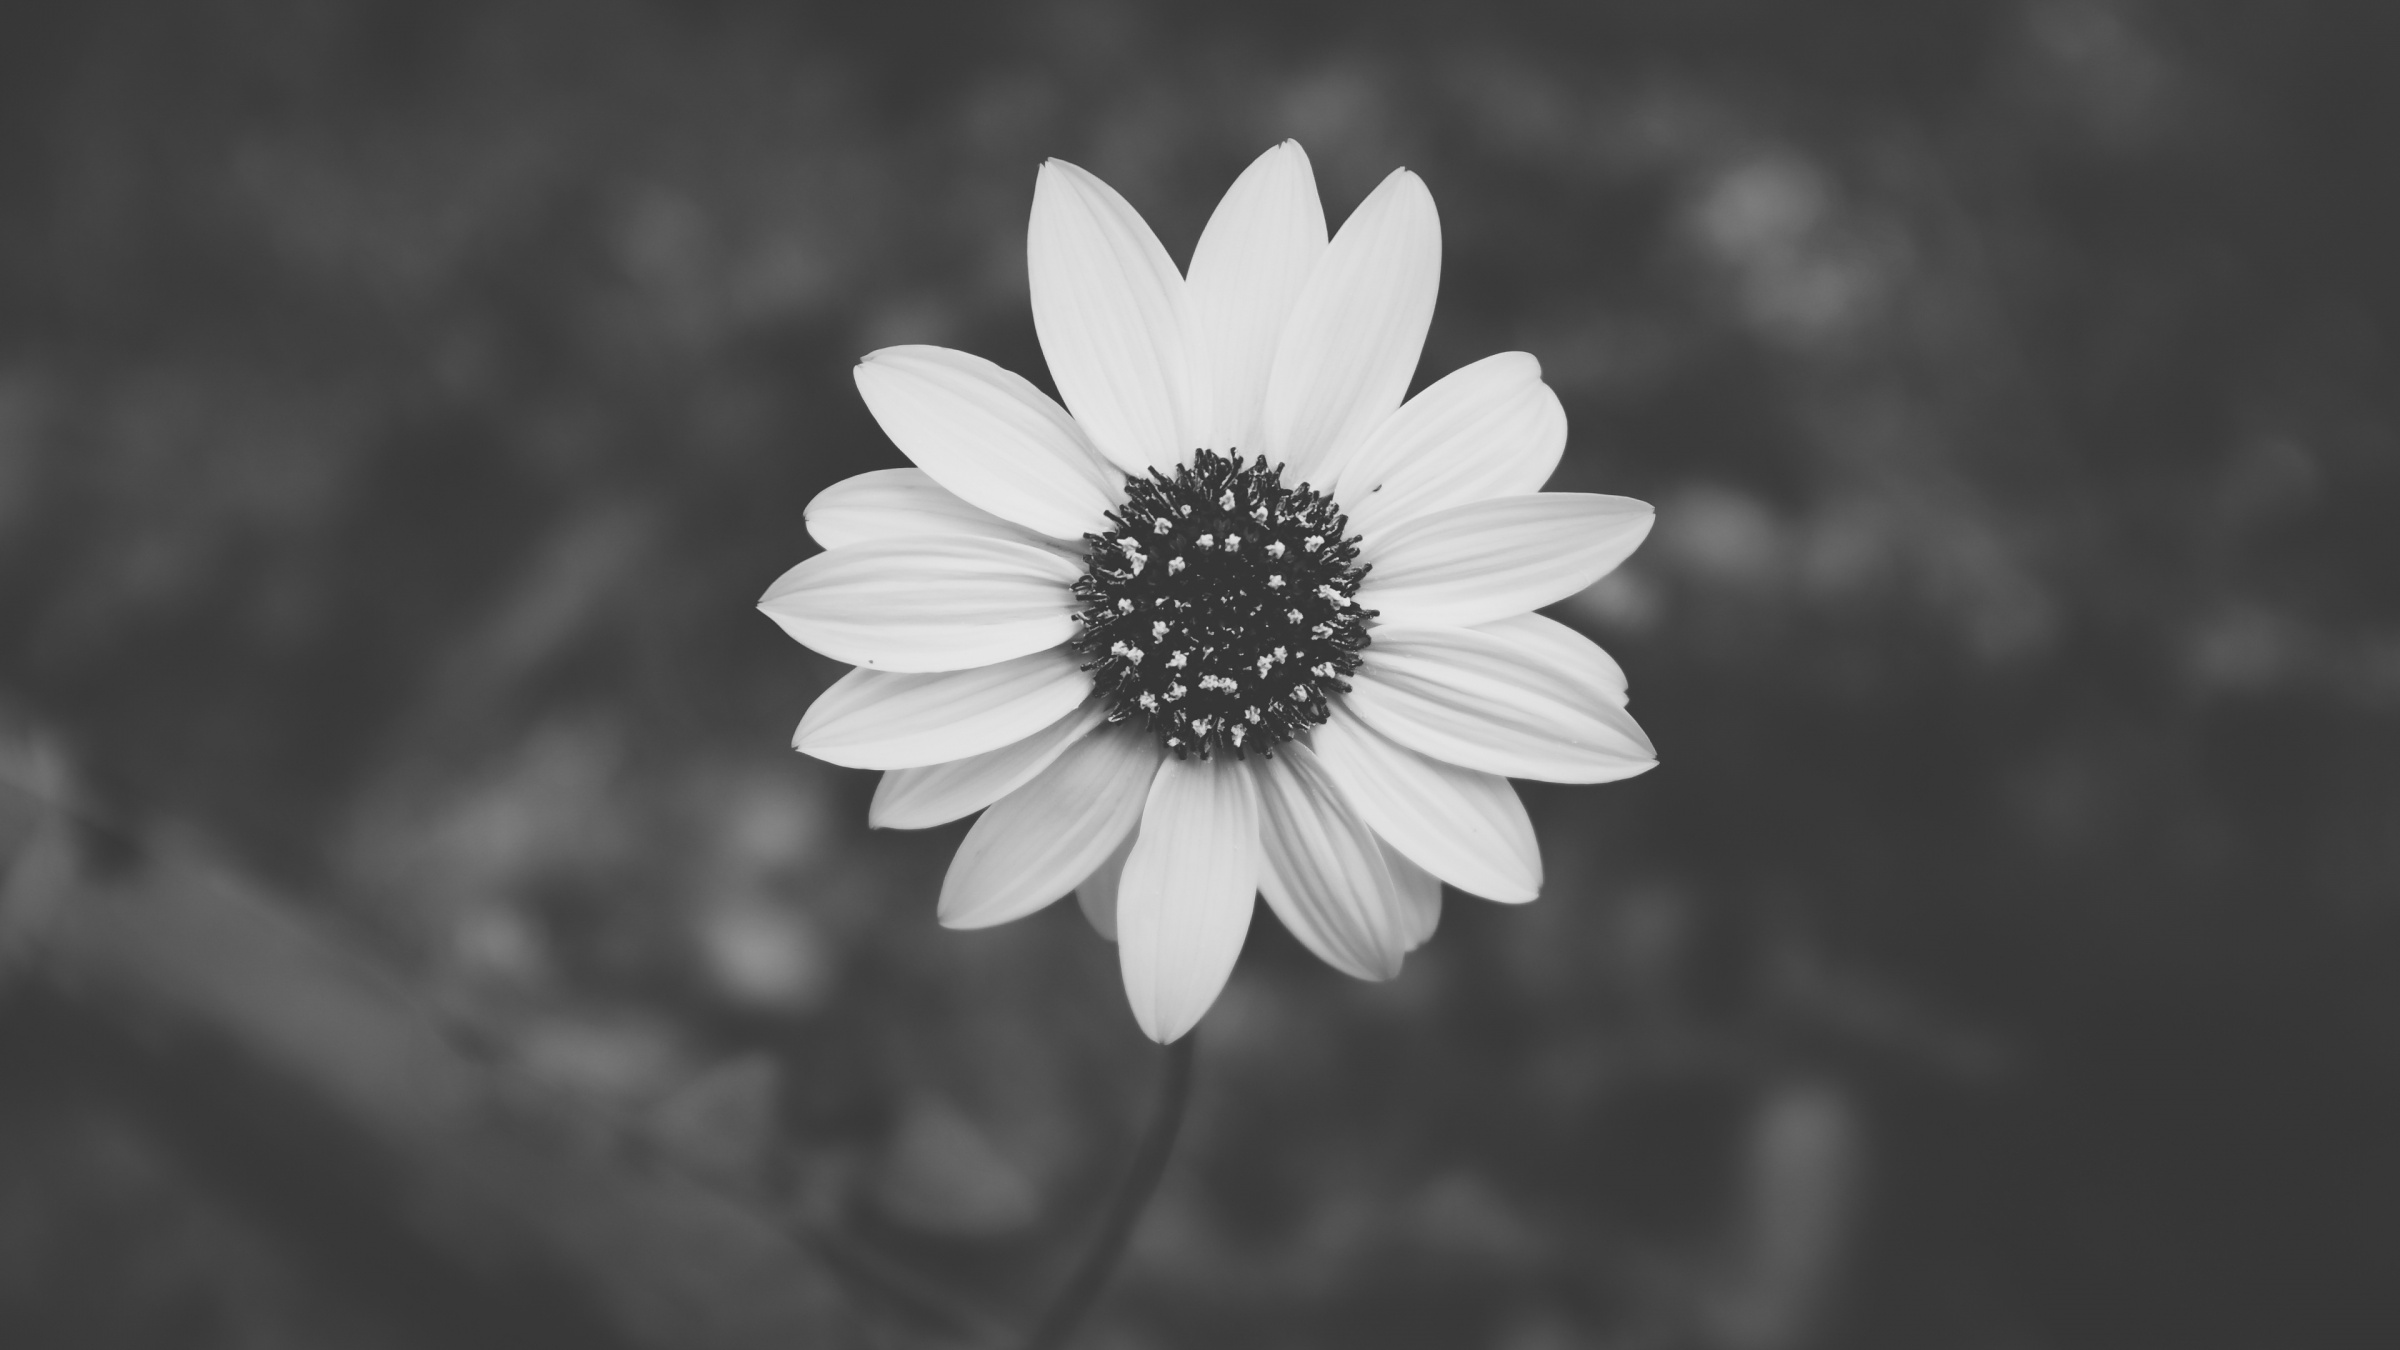 Flower wallpaper tumblr black and white